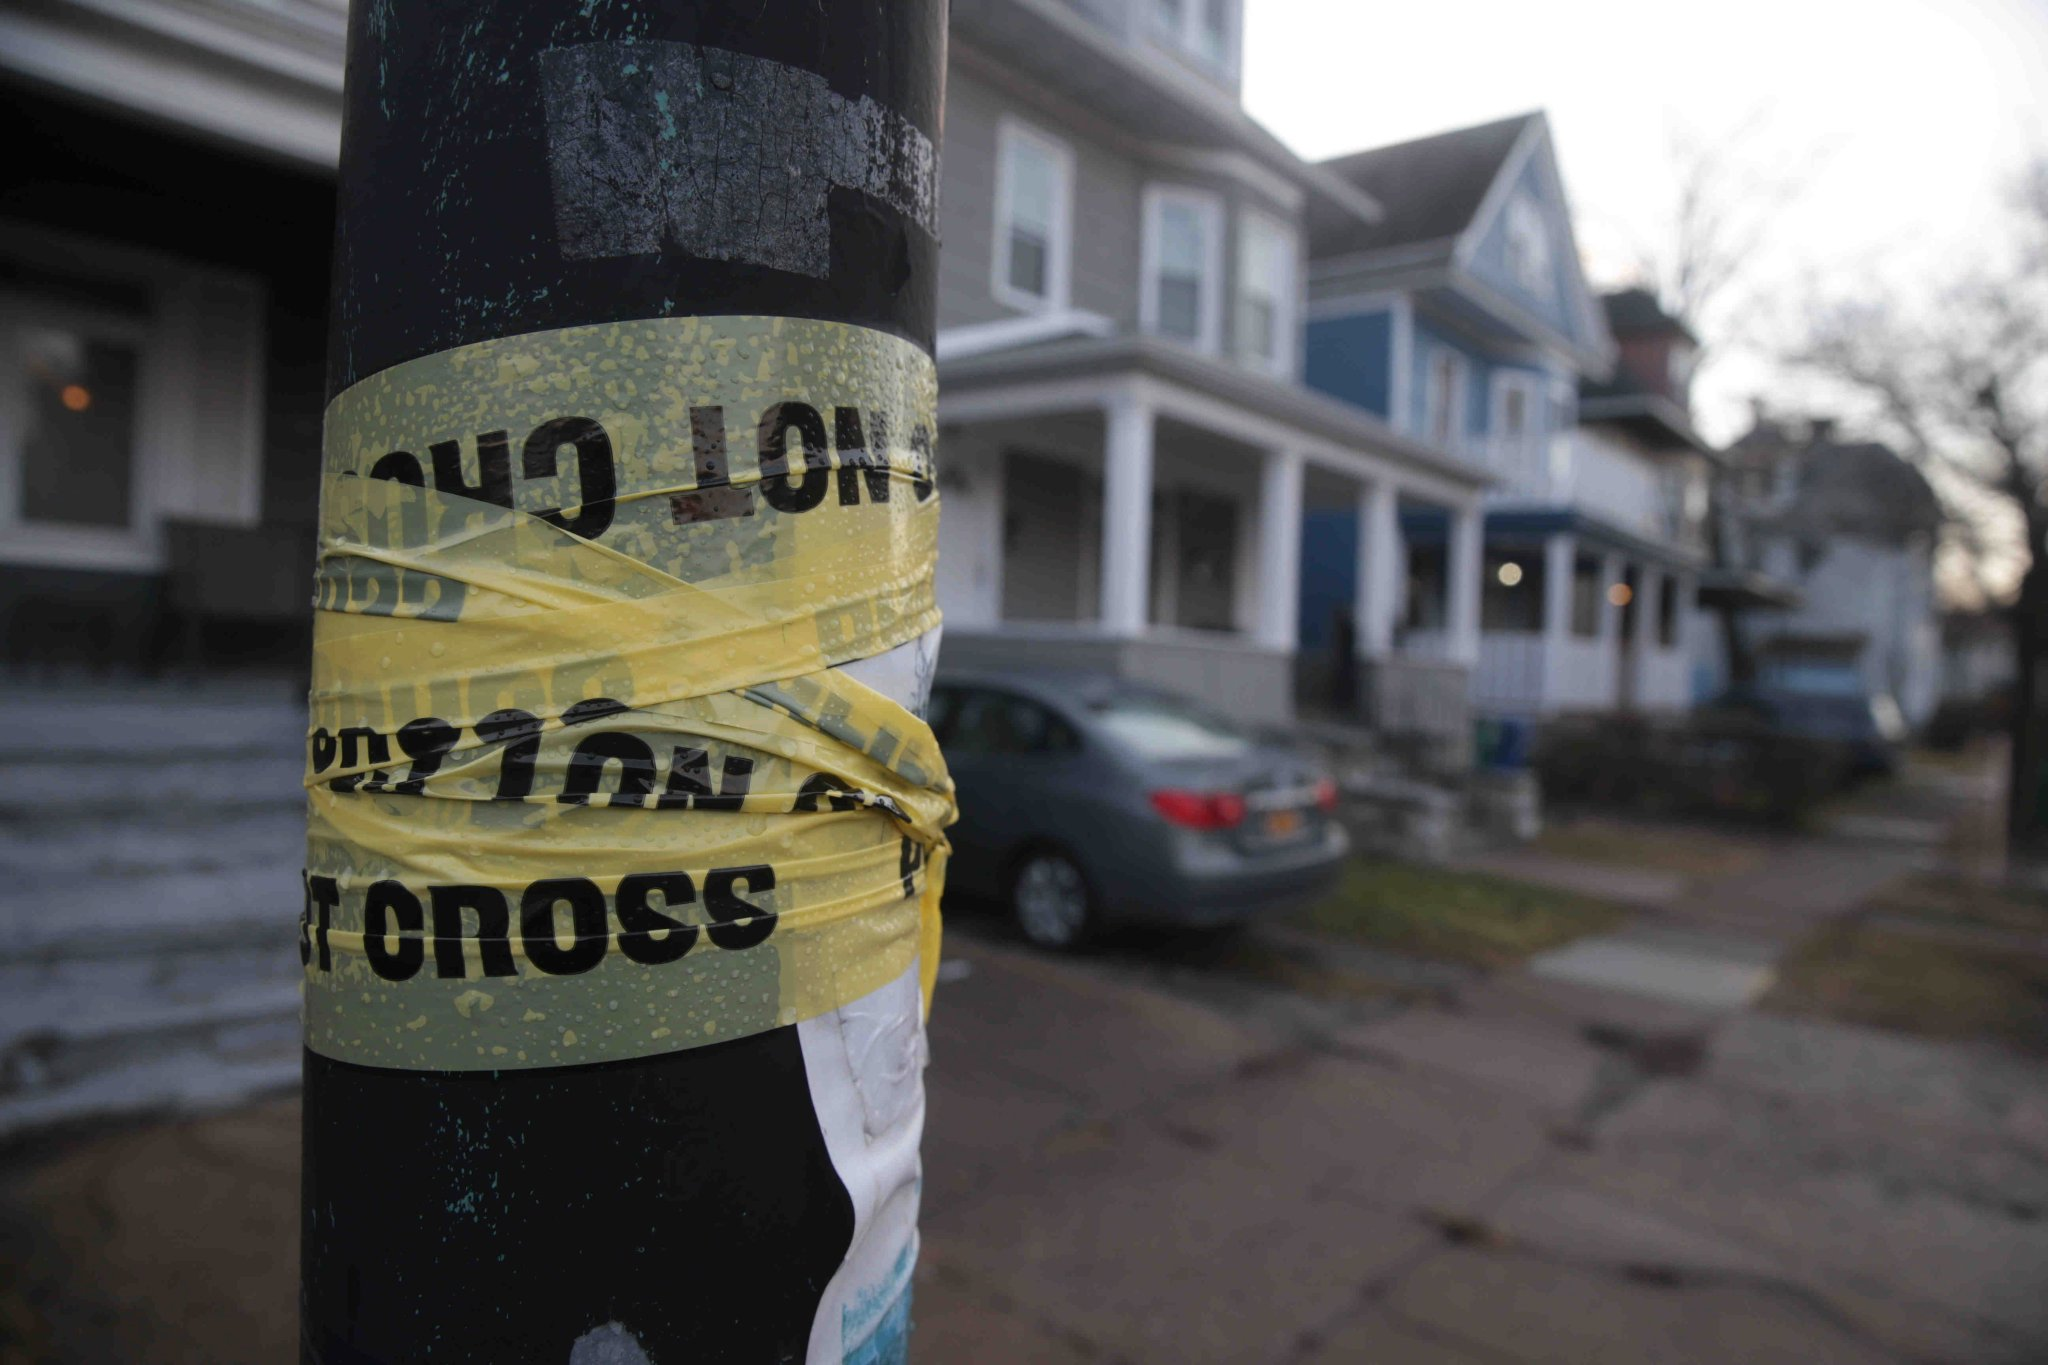 Police tape surrounds a pole near Hoyt and Arnold streets where a man died in police custody late Tuesday night. (John Hickey/Buffalo News)